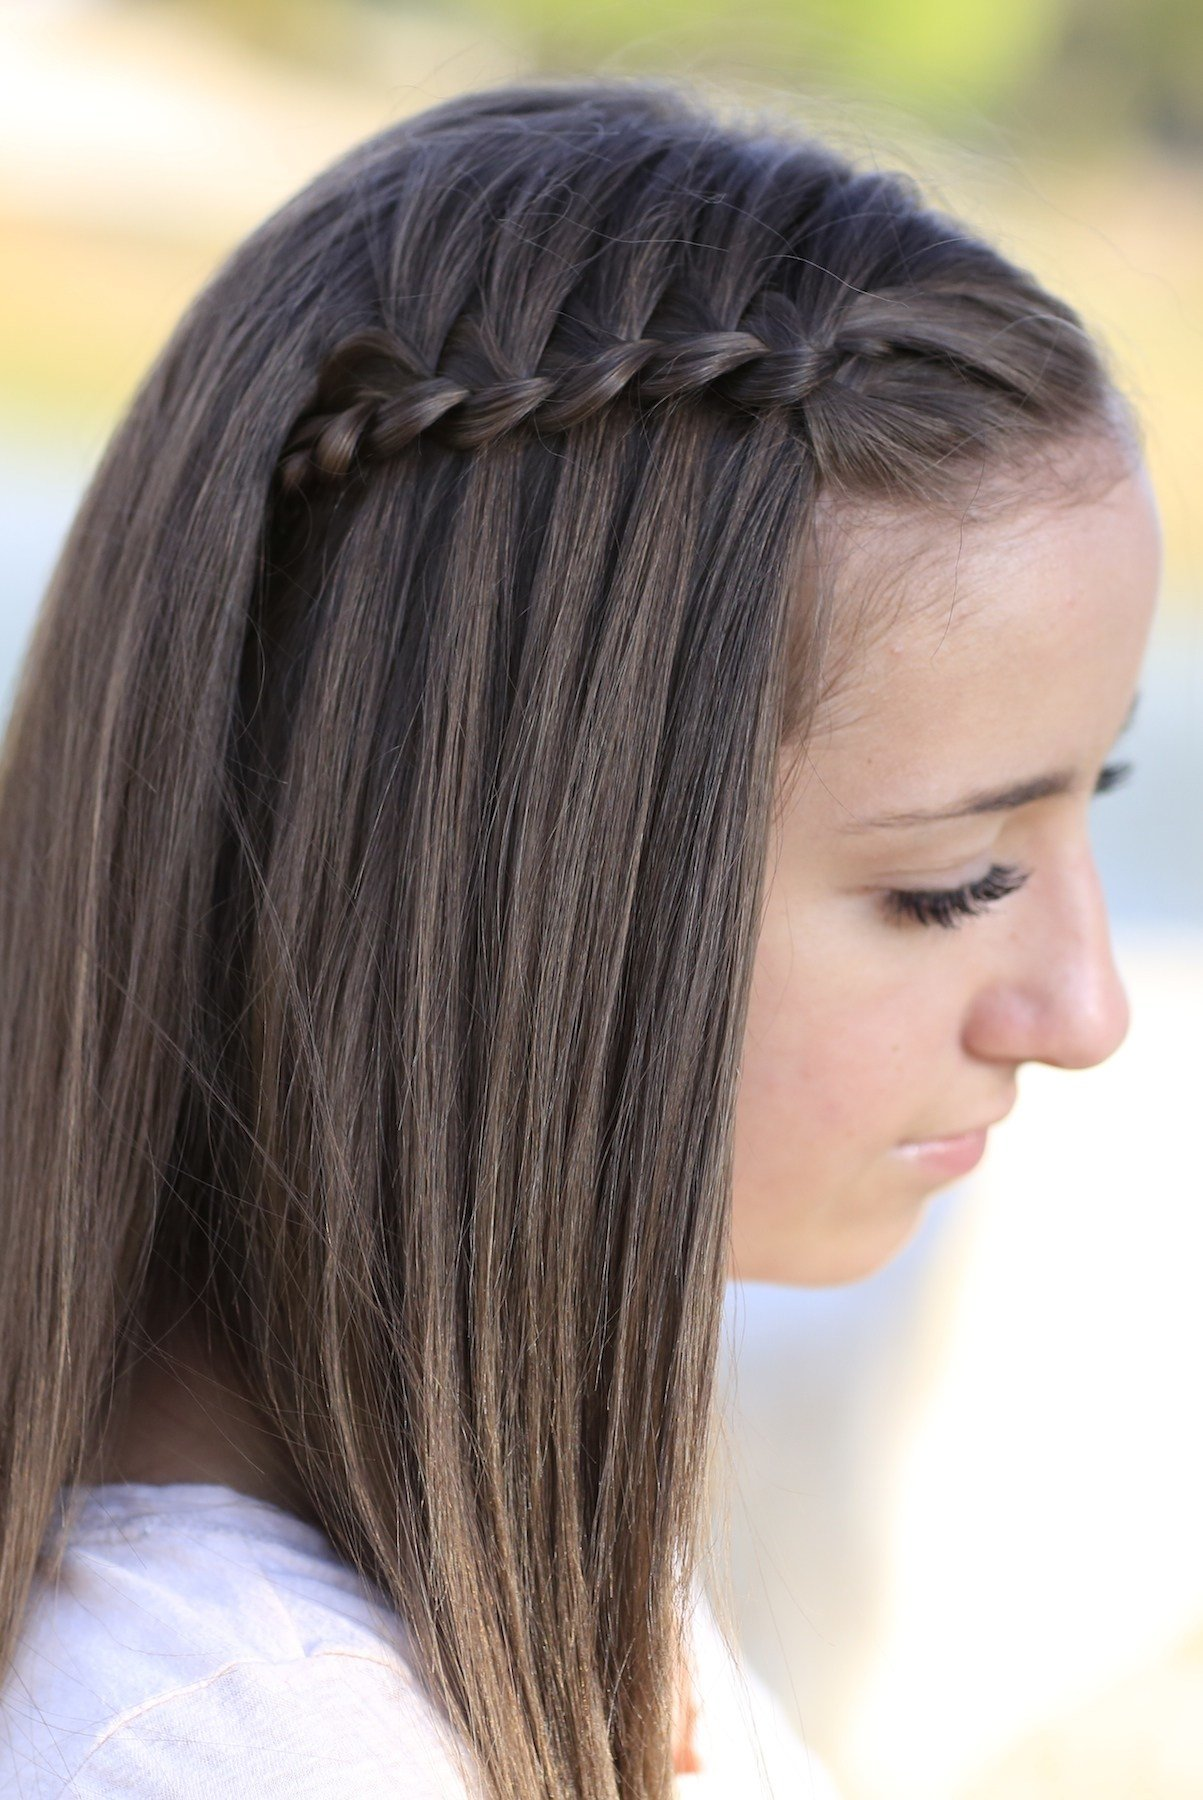 The Best Top 10 Hairstyles For 12 Year Old Girls Hair Style And Pictures